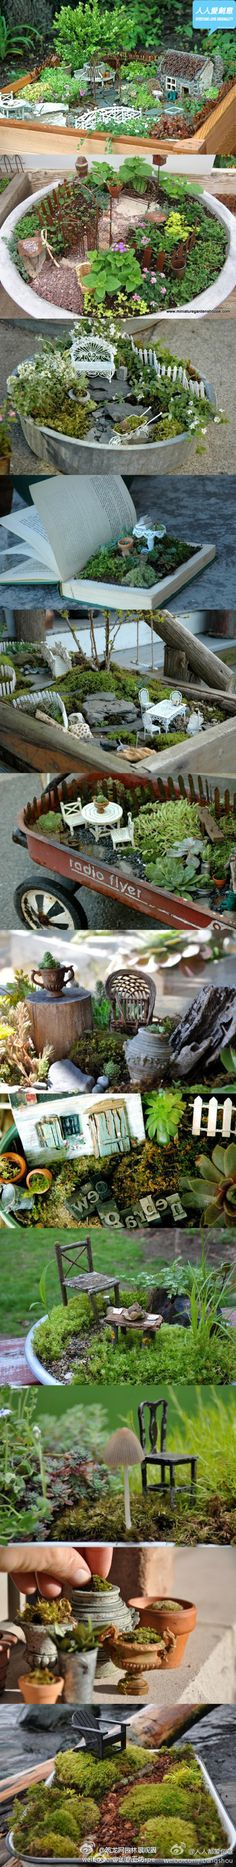 Fairy Gardens - Cute ideas